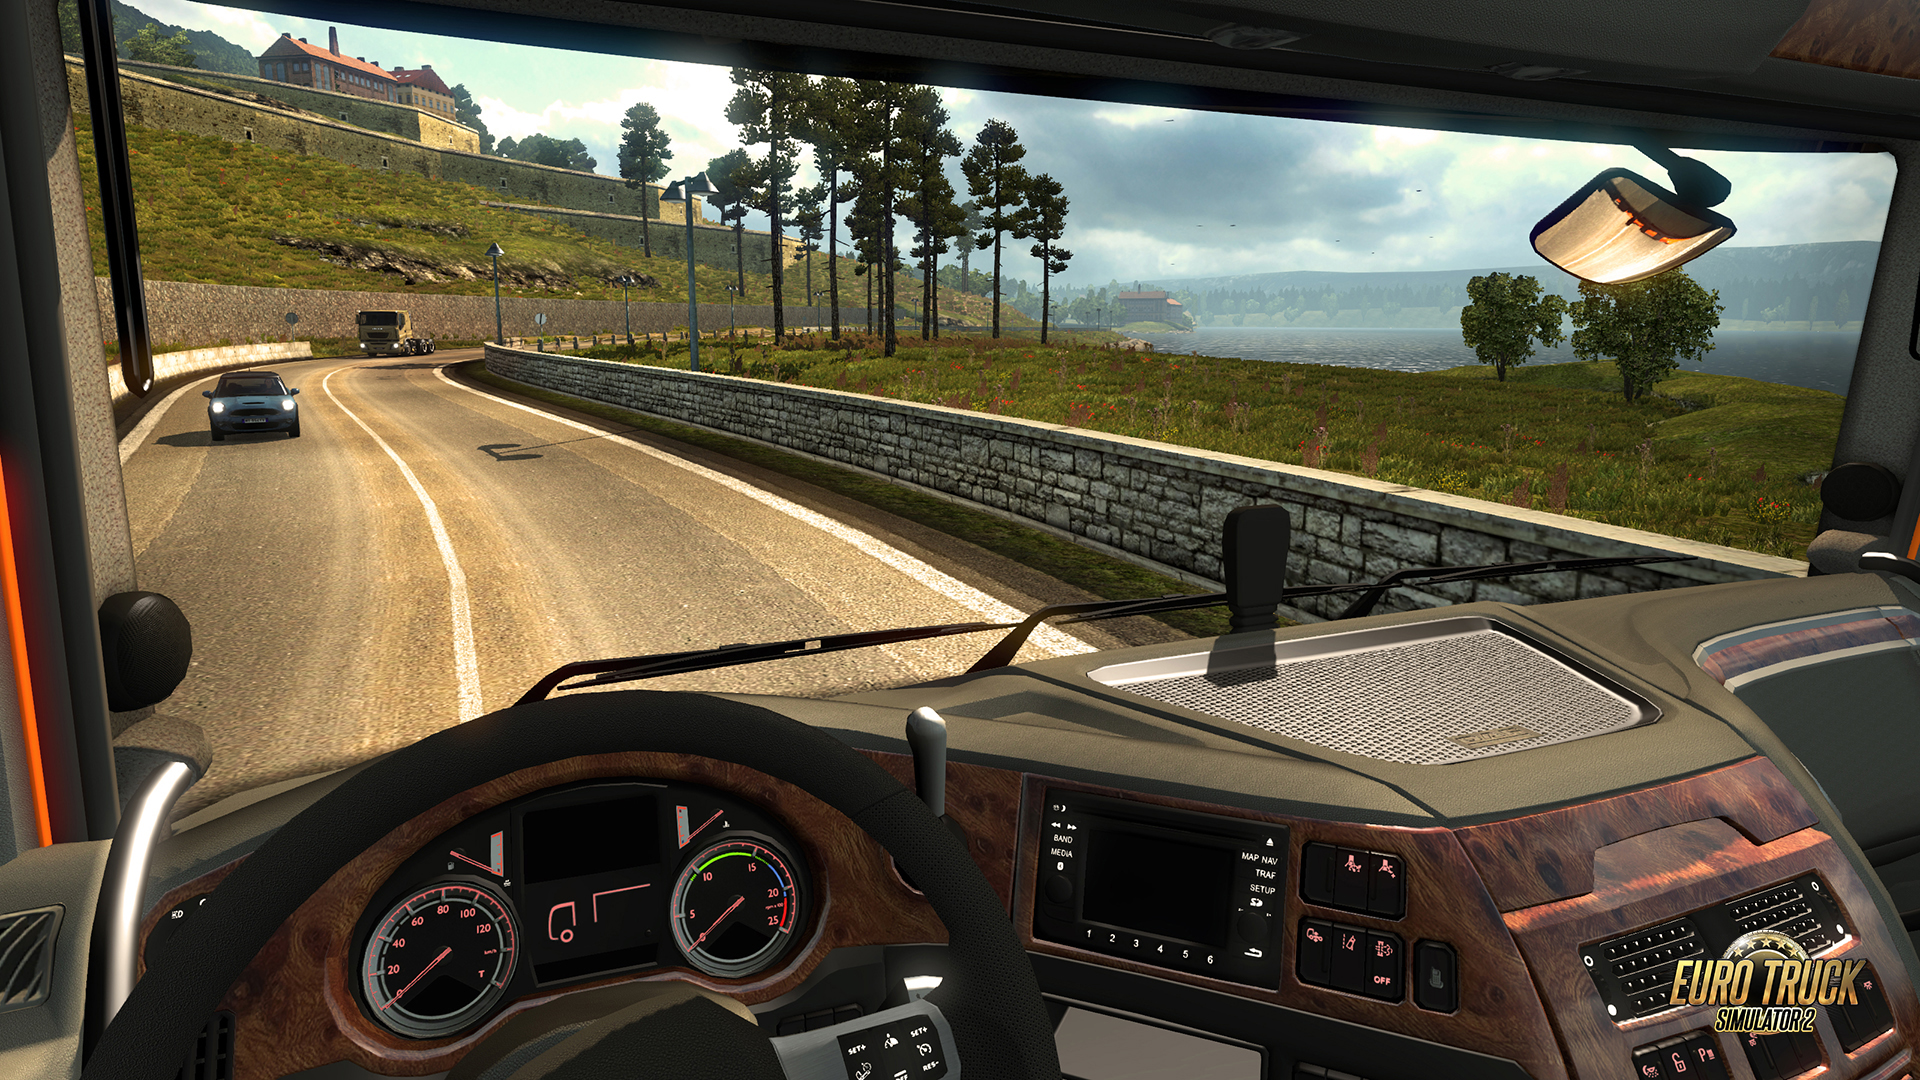 euro truck simulator 2 1.10.1 crack free download